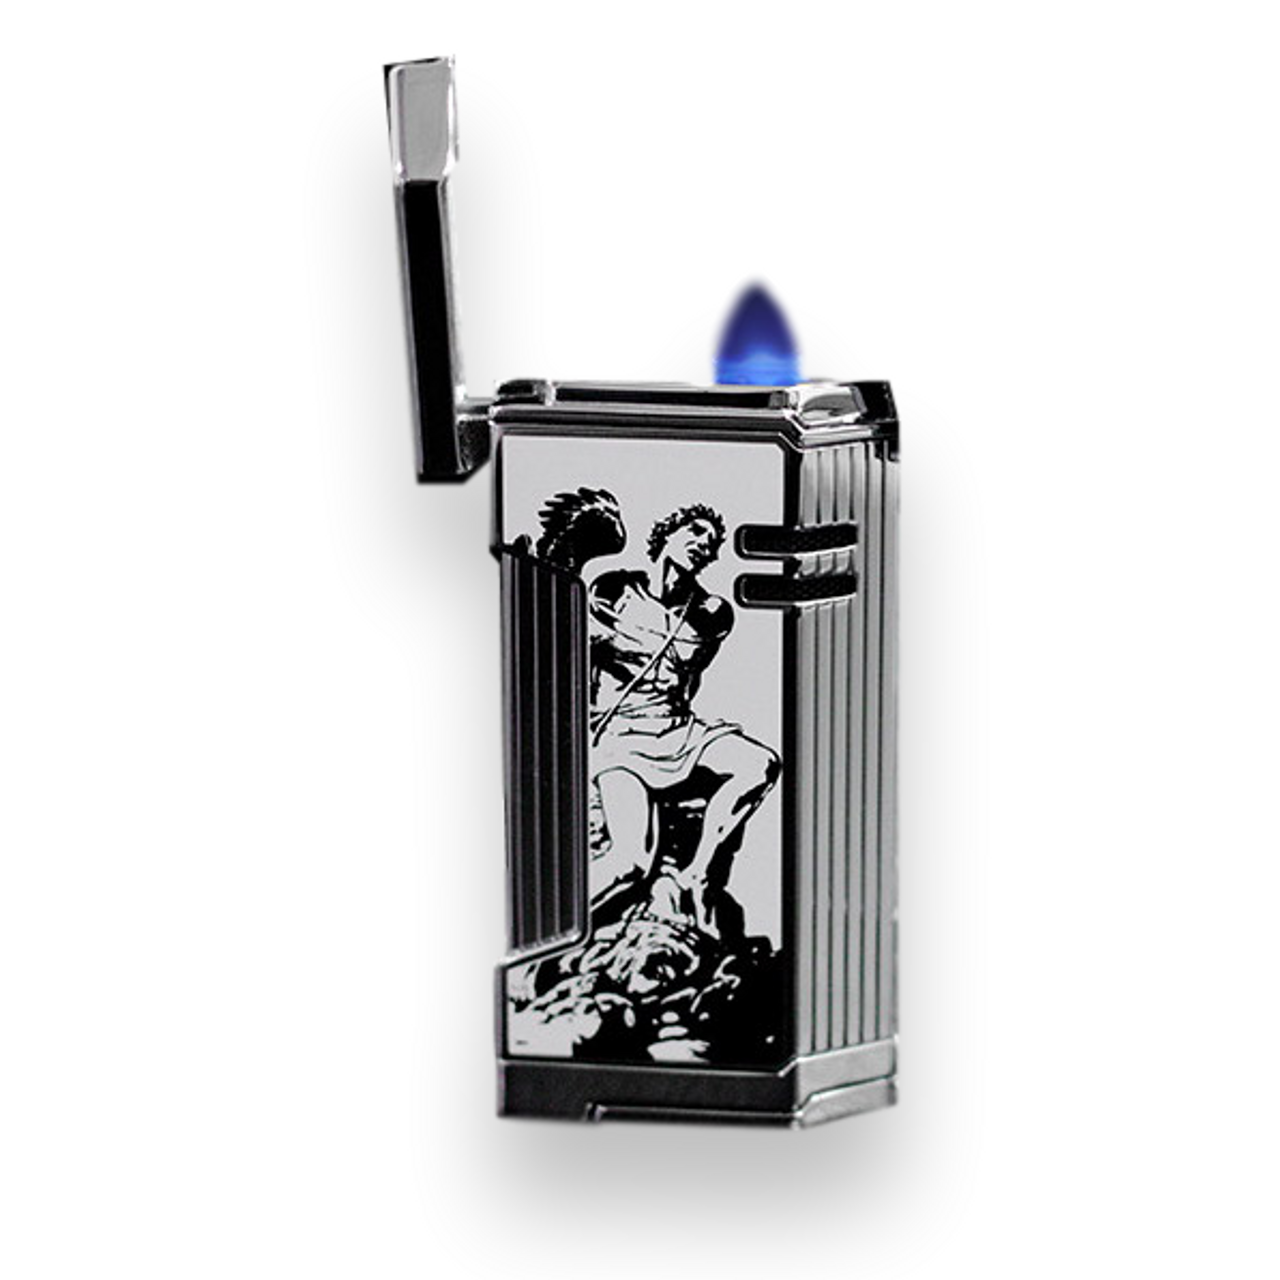 Prometheus Magma X Cigar Lighters - 2018 Limited Edition God of Fire